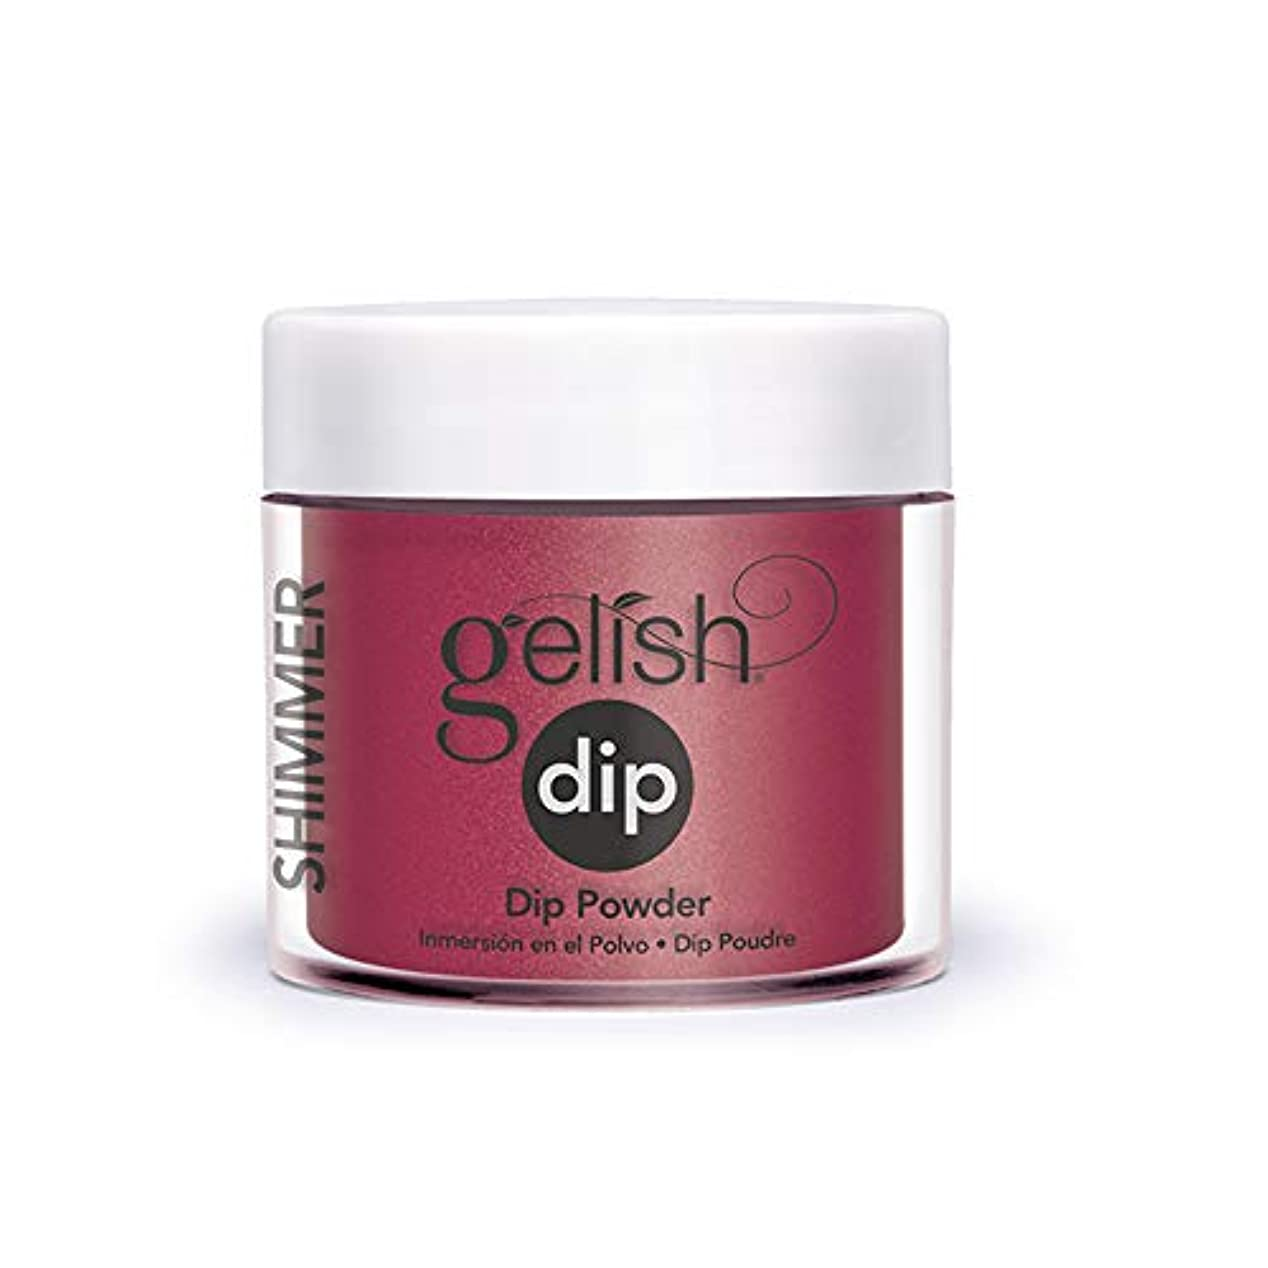 事チャンバー拒絶するHarmony Gelish - Acrylic Dip Powder - Wonder Woman - 23g / 0.8oz